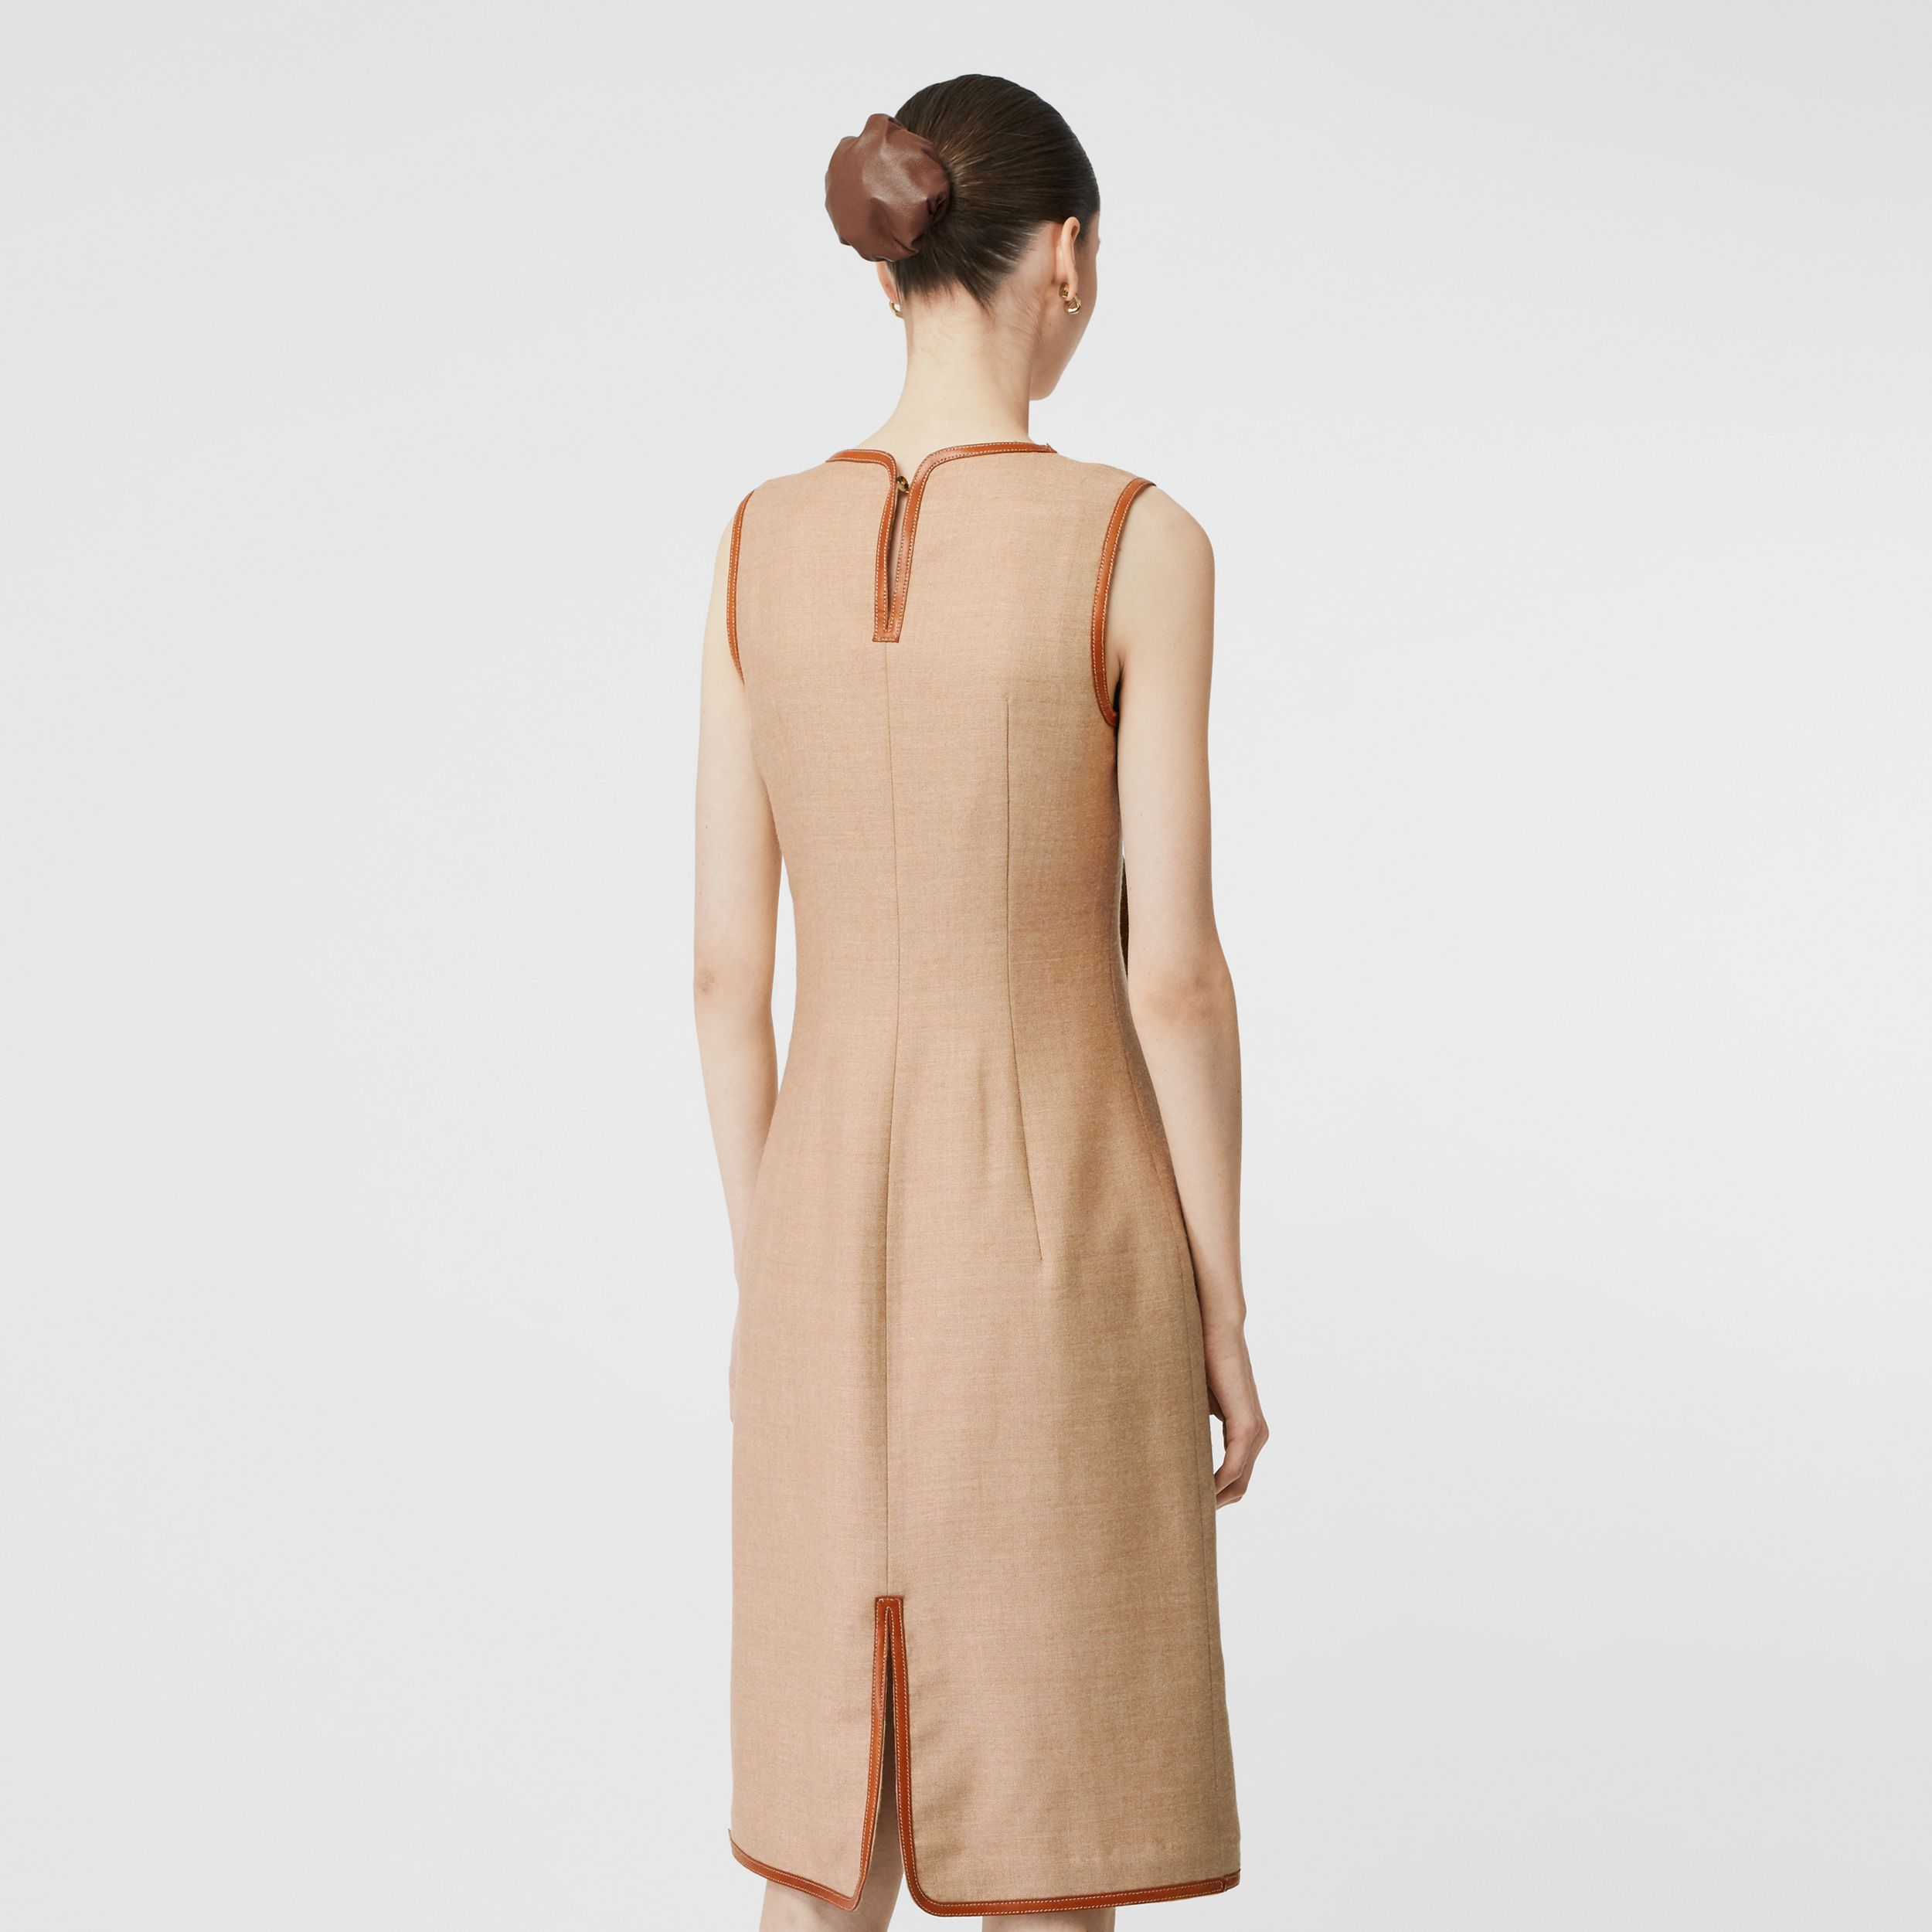 Button Panel Detail Wool Blend Shift Dress in Biscuit - Women | Burberry Canada - 3